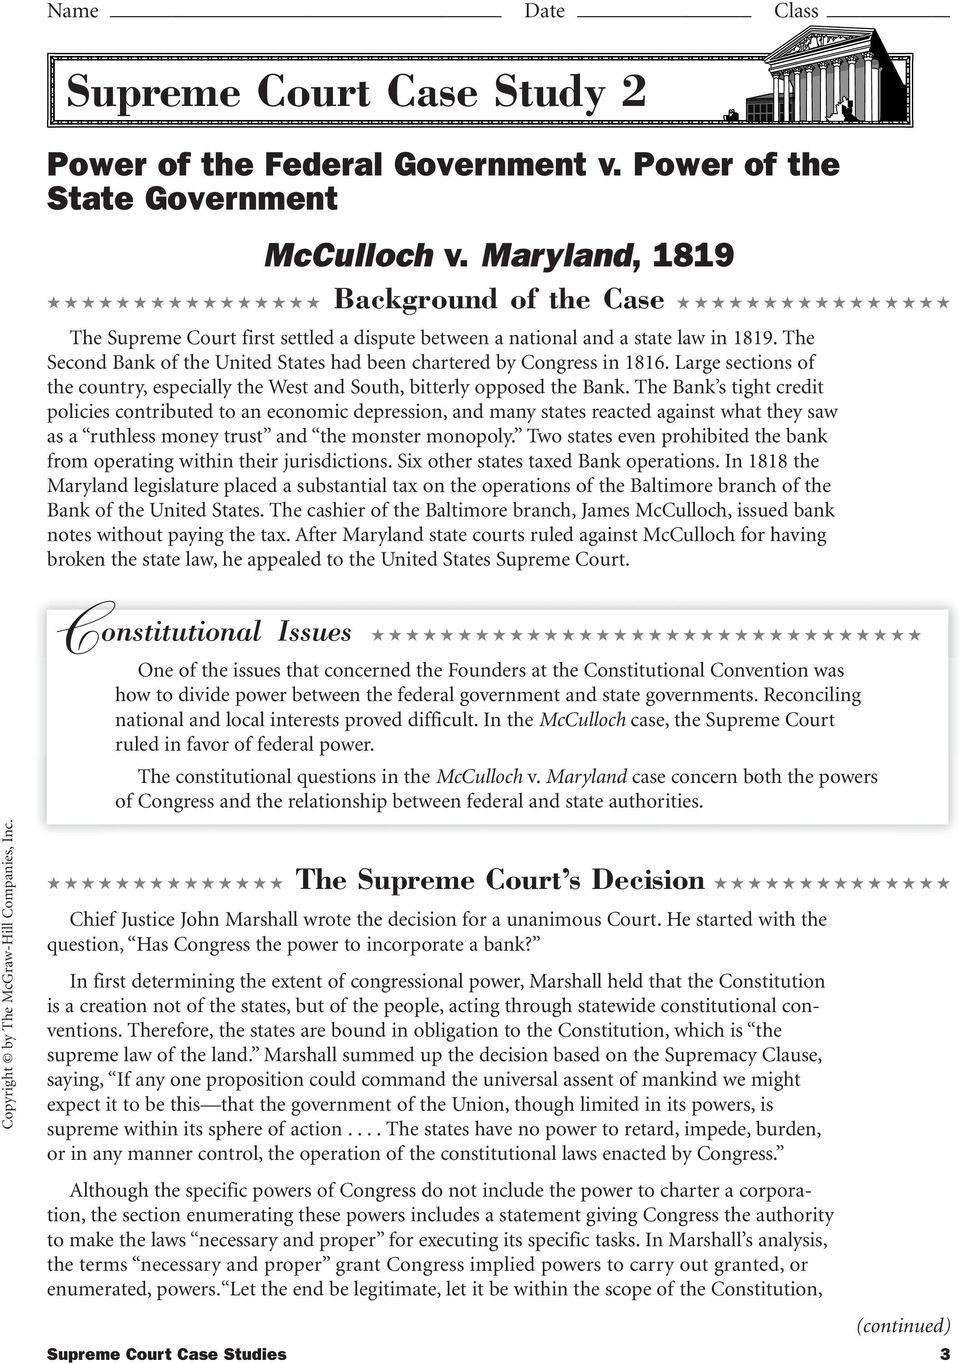 "us history regents essay on supreme court cases New york times co v united states, 403 us 713 (1971), was a landmark  decision by the  the supreme court ruled that the first amendment did protect  the right of  s mcnamara commissioned a ""massive top-secret history of the  united states  between the courts of appeal led the supreme court to hear the  case."